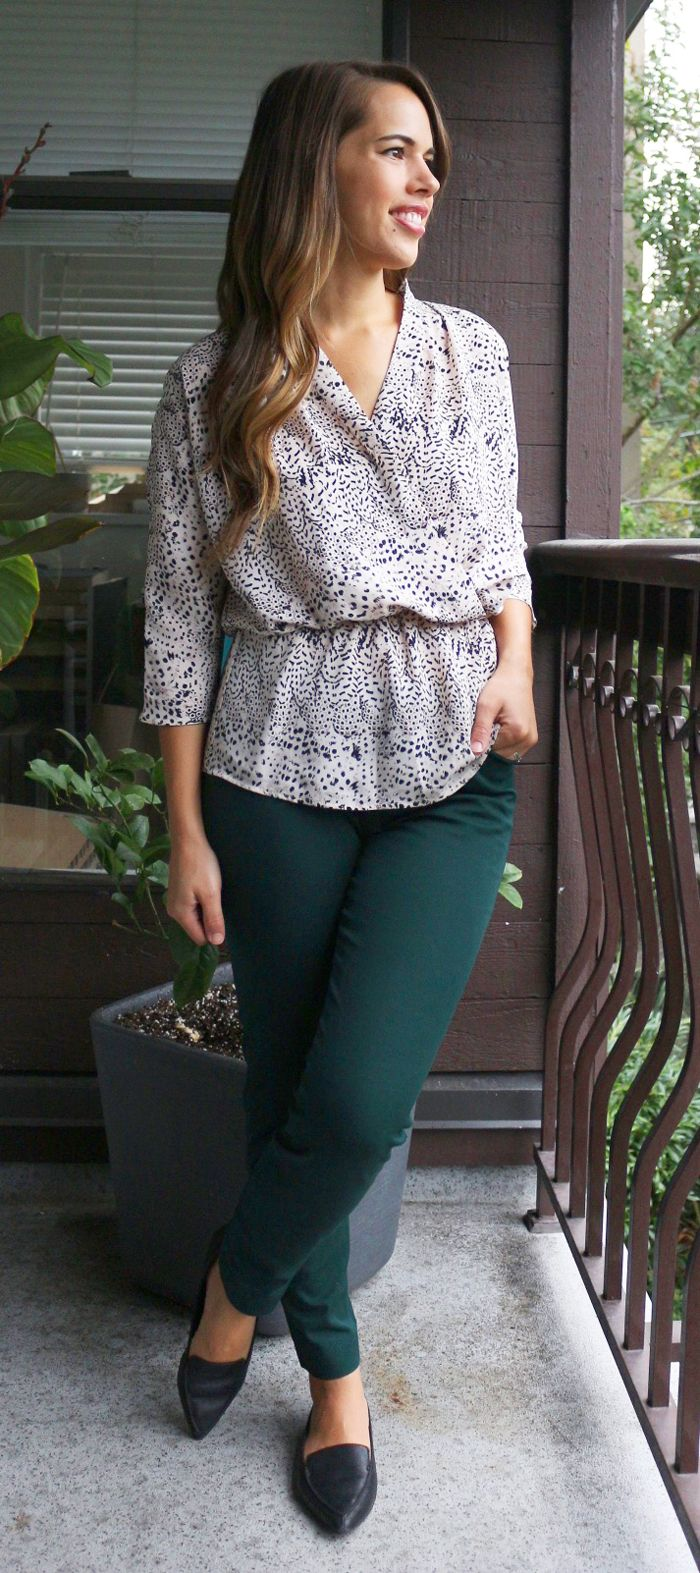 Jules in Flats Sept 7 Outfit - Old Navy Pixie Pant, Dynamite Wrap Blouse, Aldo…